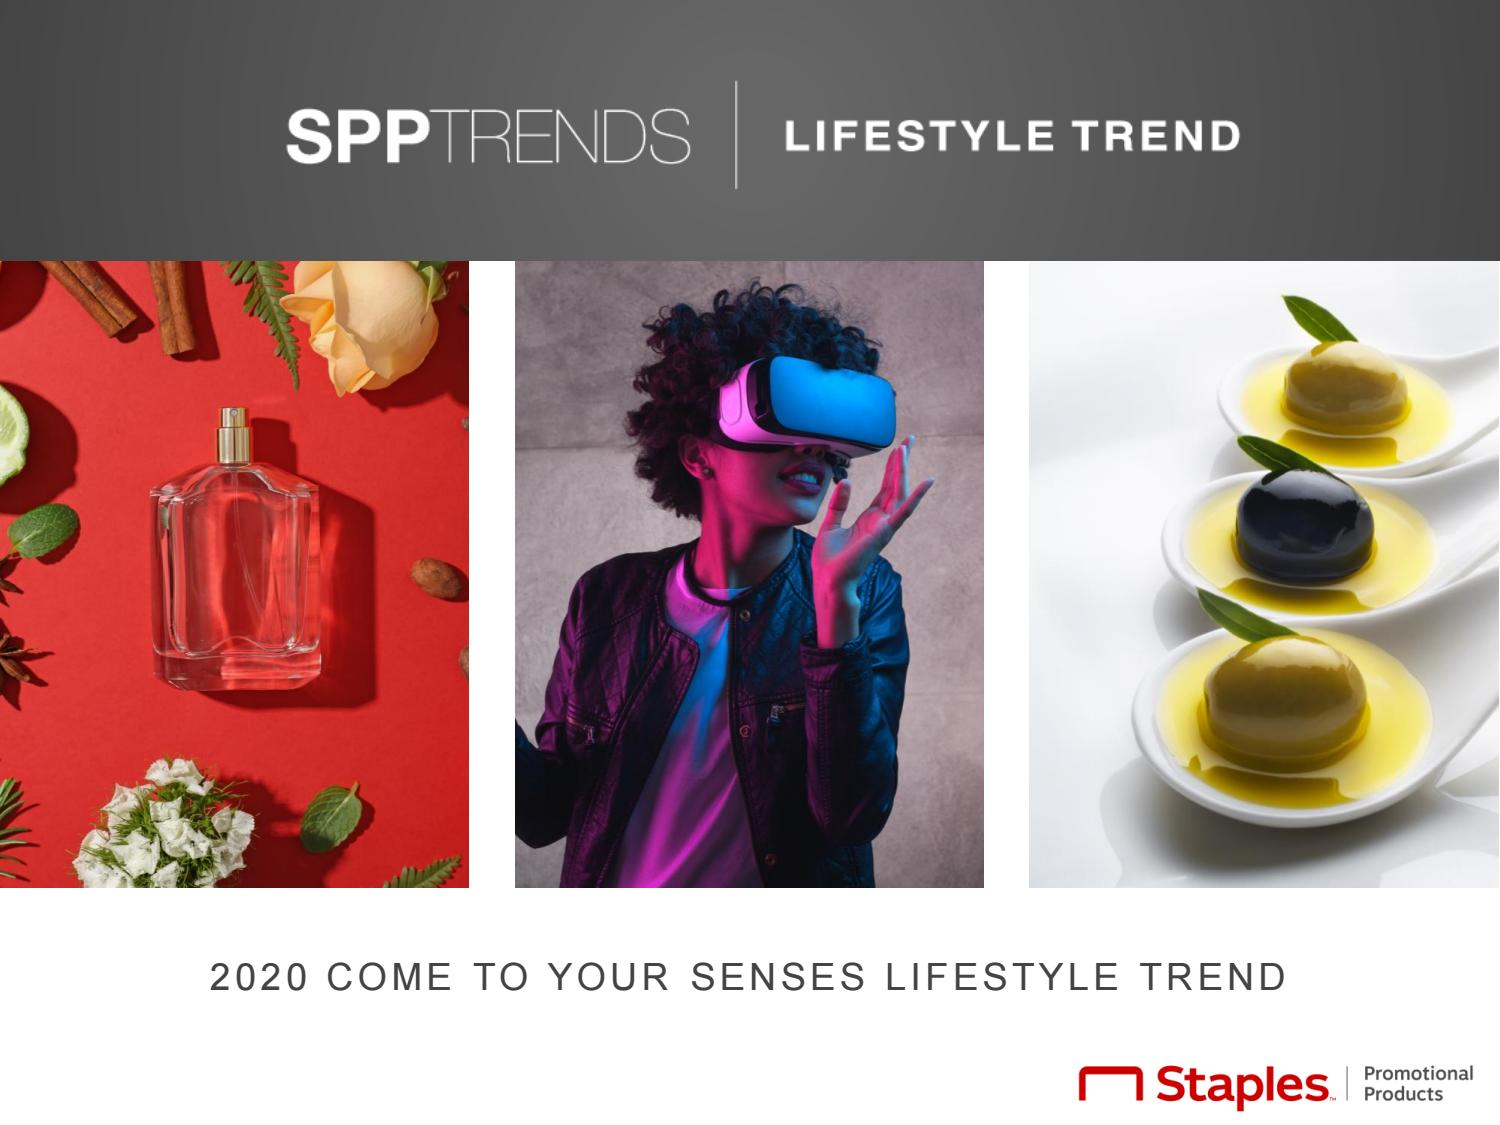 2020 Lifestyle Trends.Spp Trends 2020 Come To Your Senses Lifestyle Trend By Spp